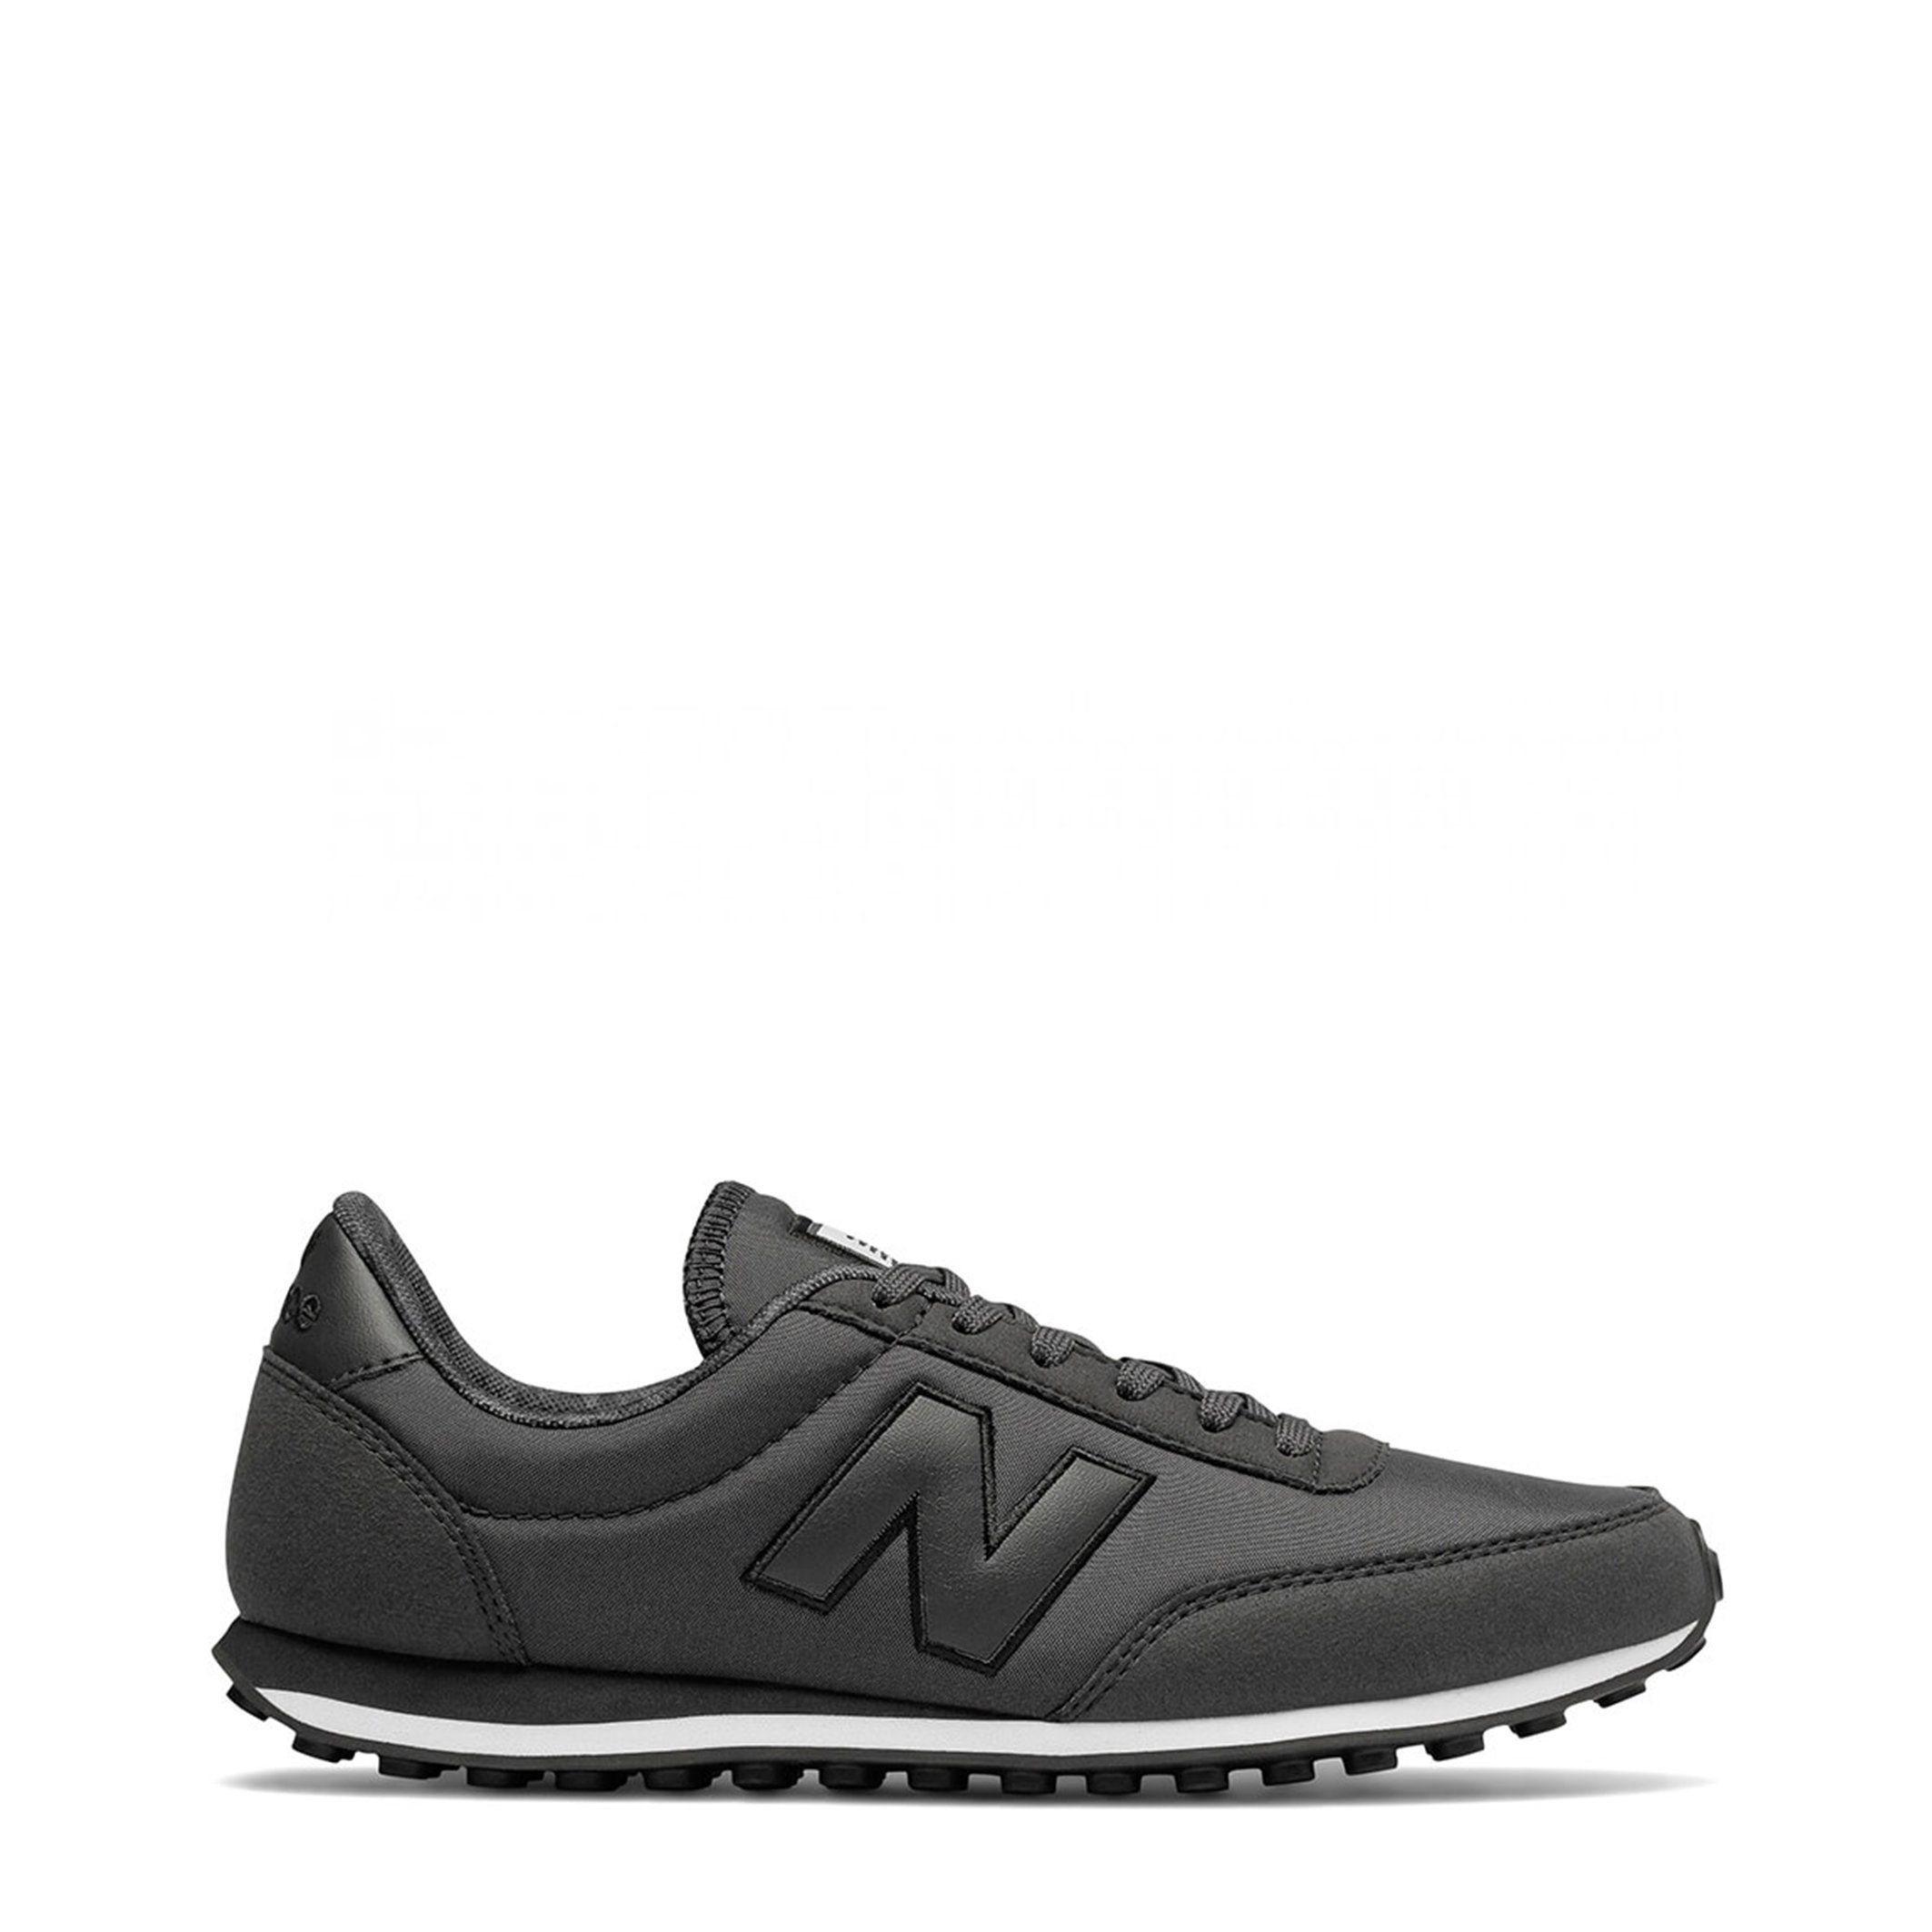 Pertenecer a enchufe hielo  buy > new balance wl410 mujer > Up to 65% OFF > Free shipping